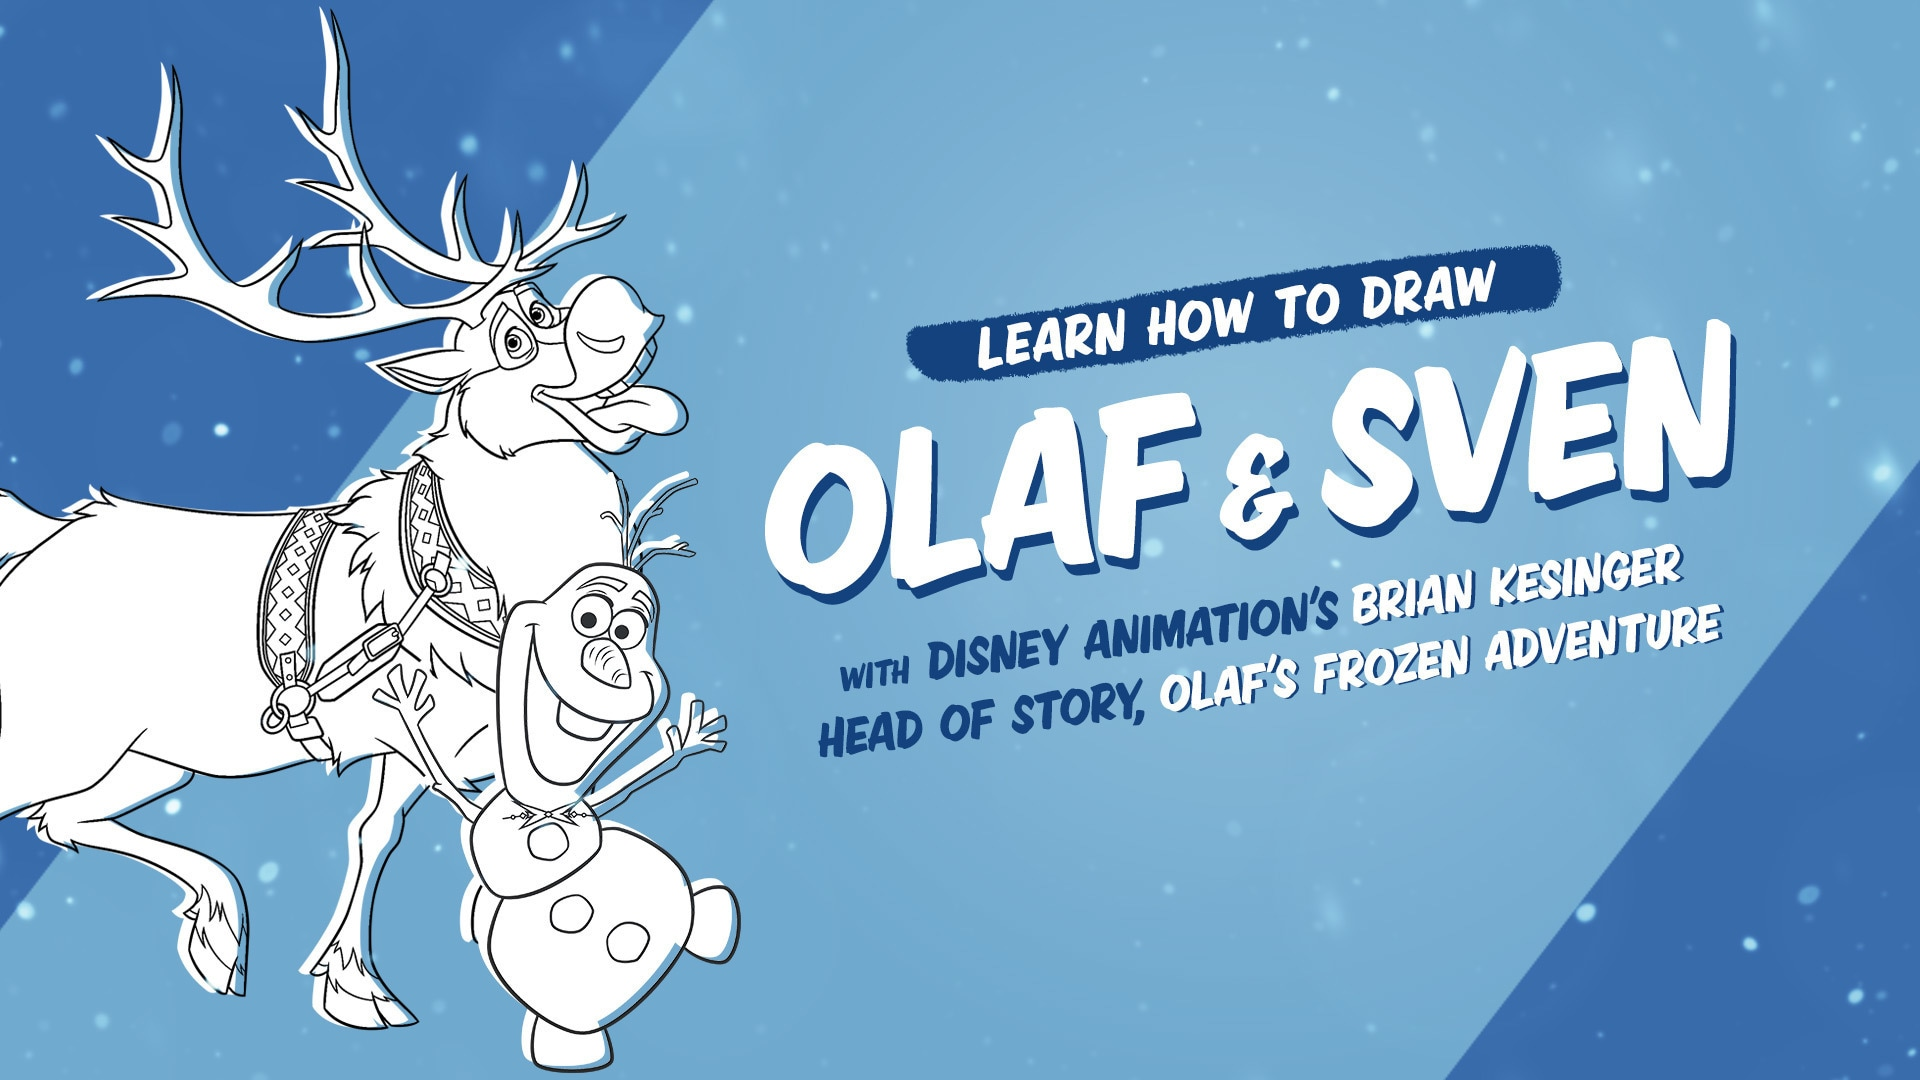 How to Draw Olaf & Sven with Brian Kesinger